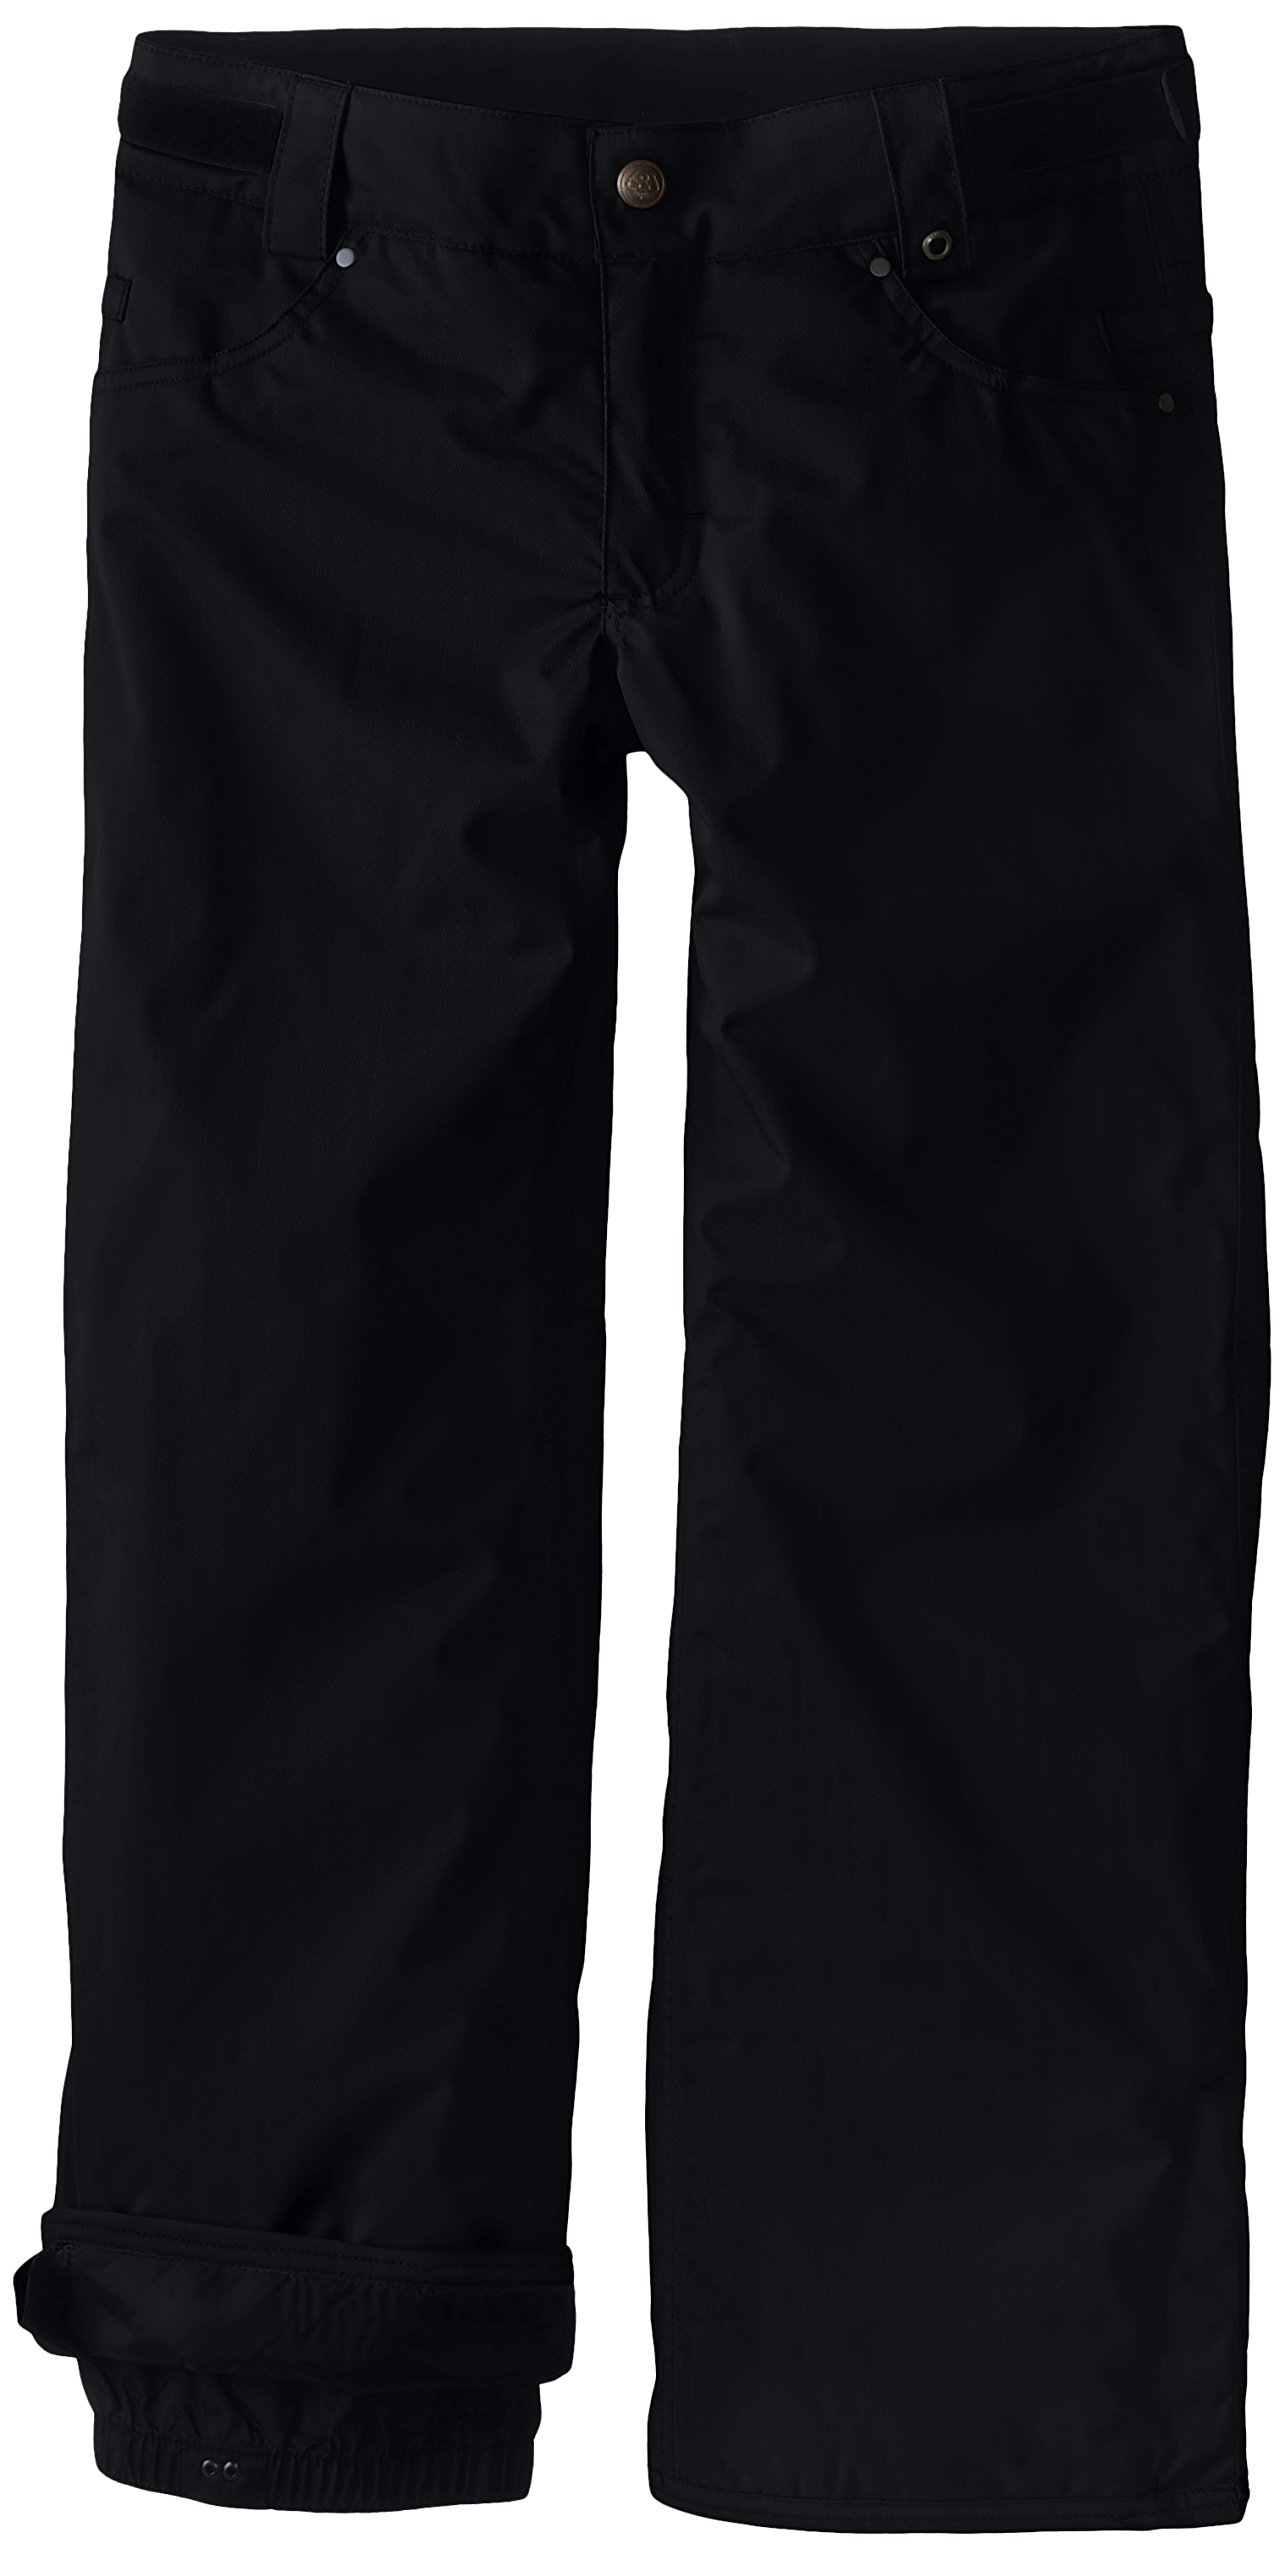 686 Boy's Prospect Insulated Pant, Small, Black Herringbone by 686